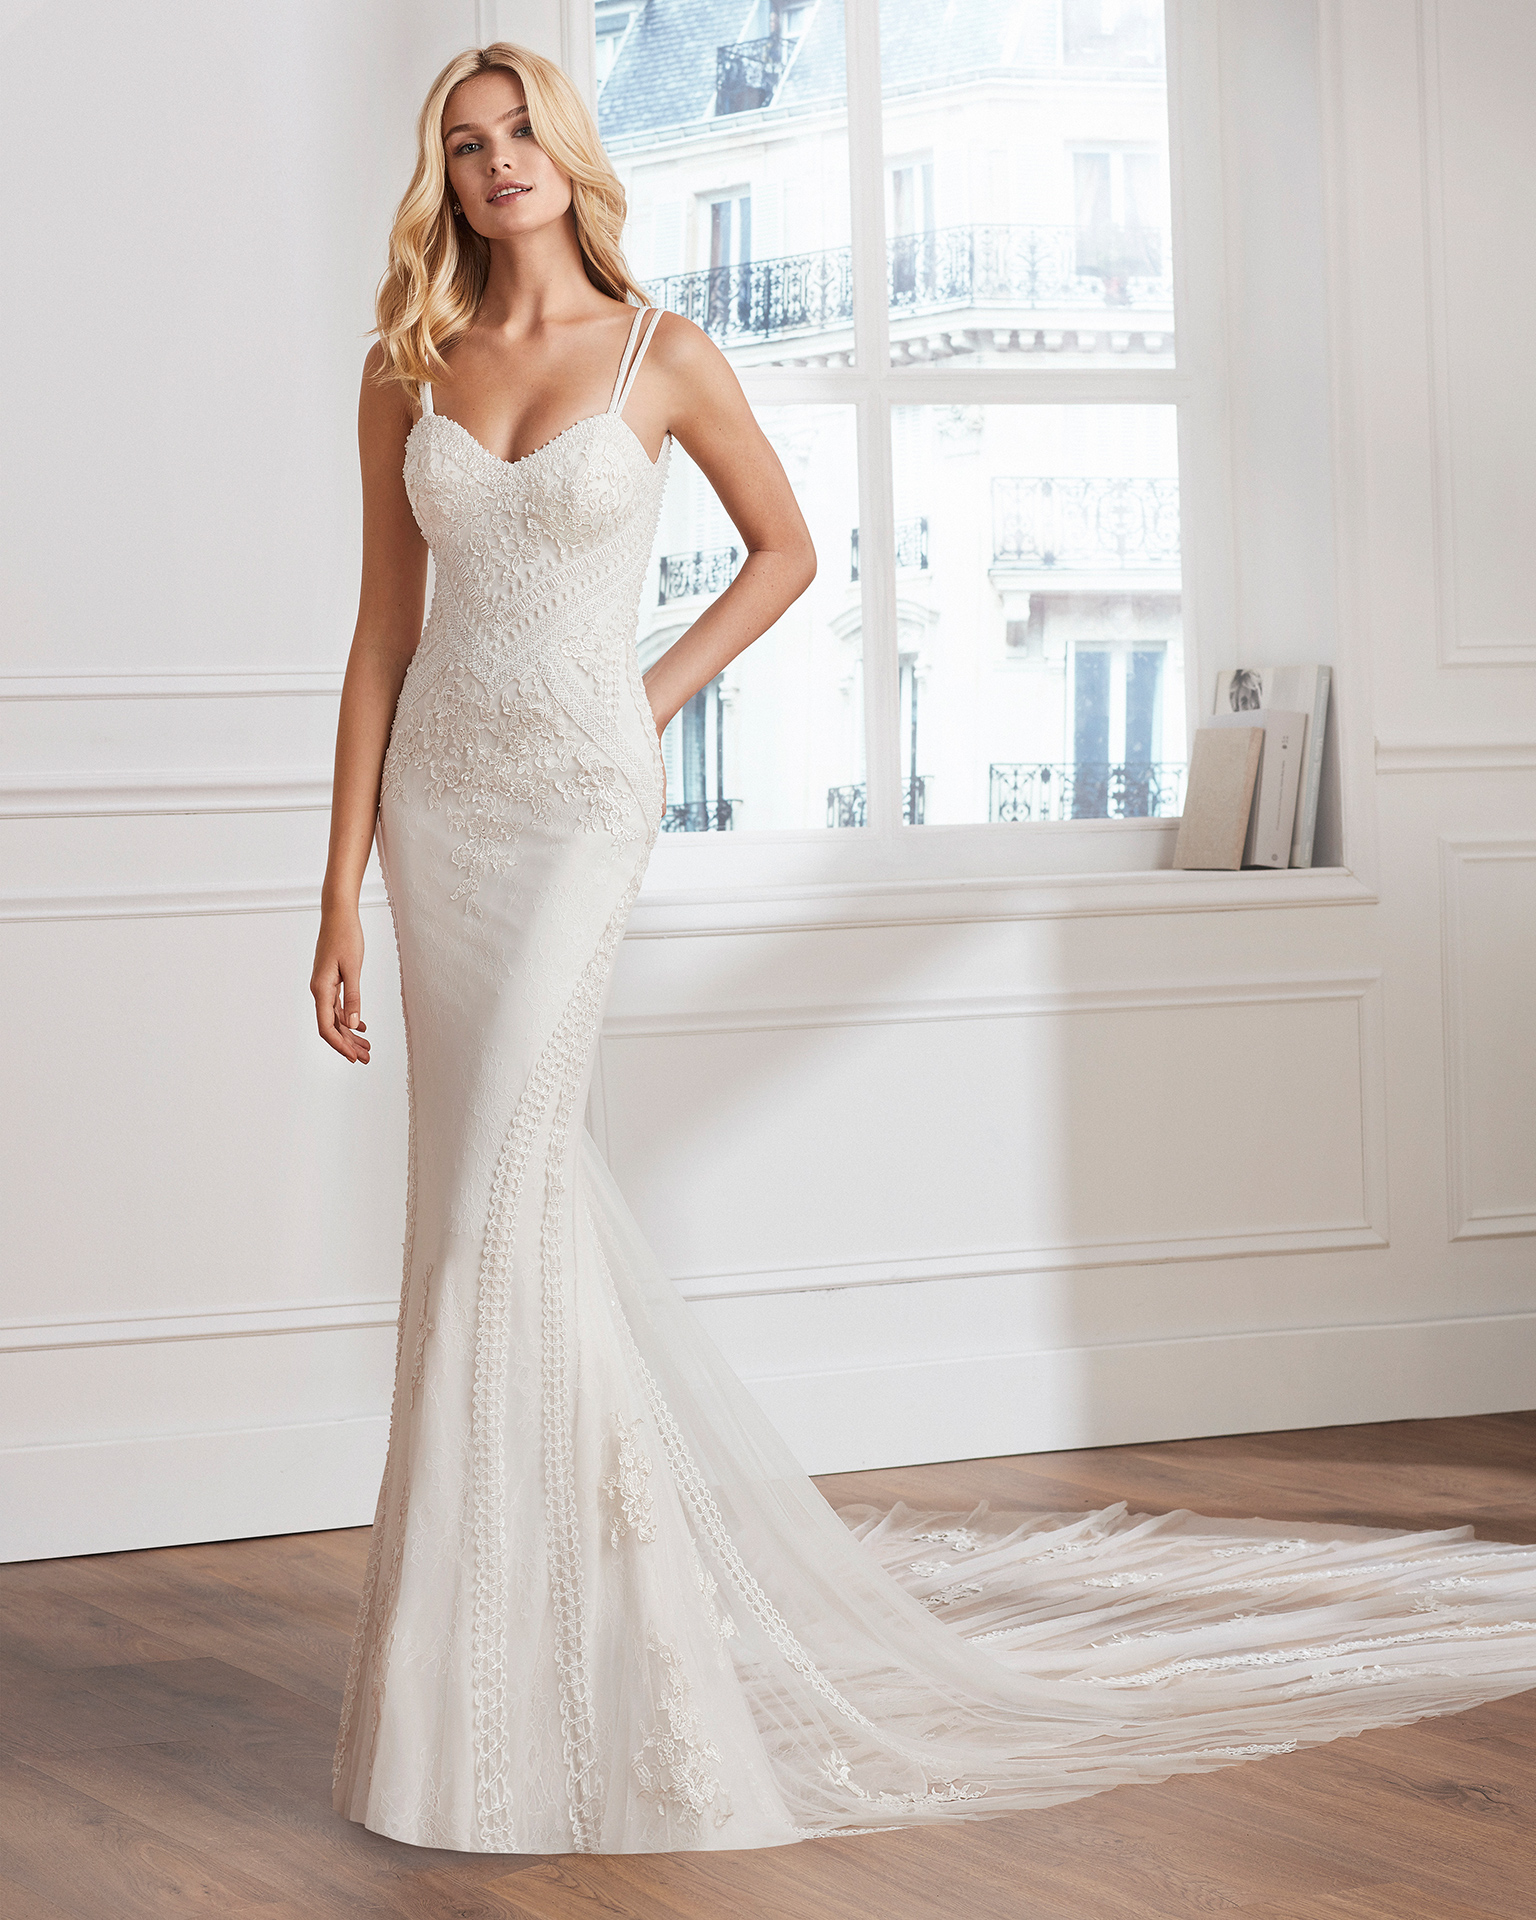 Sheath-style wedding dress in lace. Semi-sweetheart neckline and open back. Available in natural. 2019  Collection.